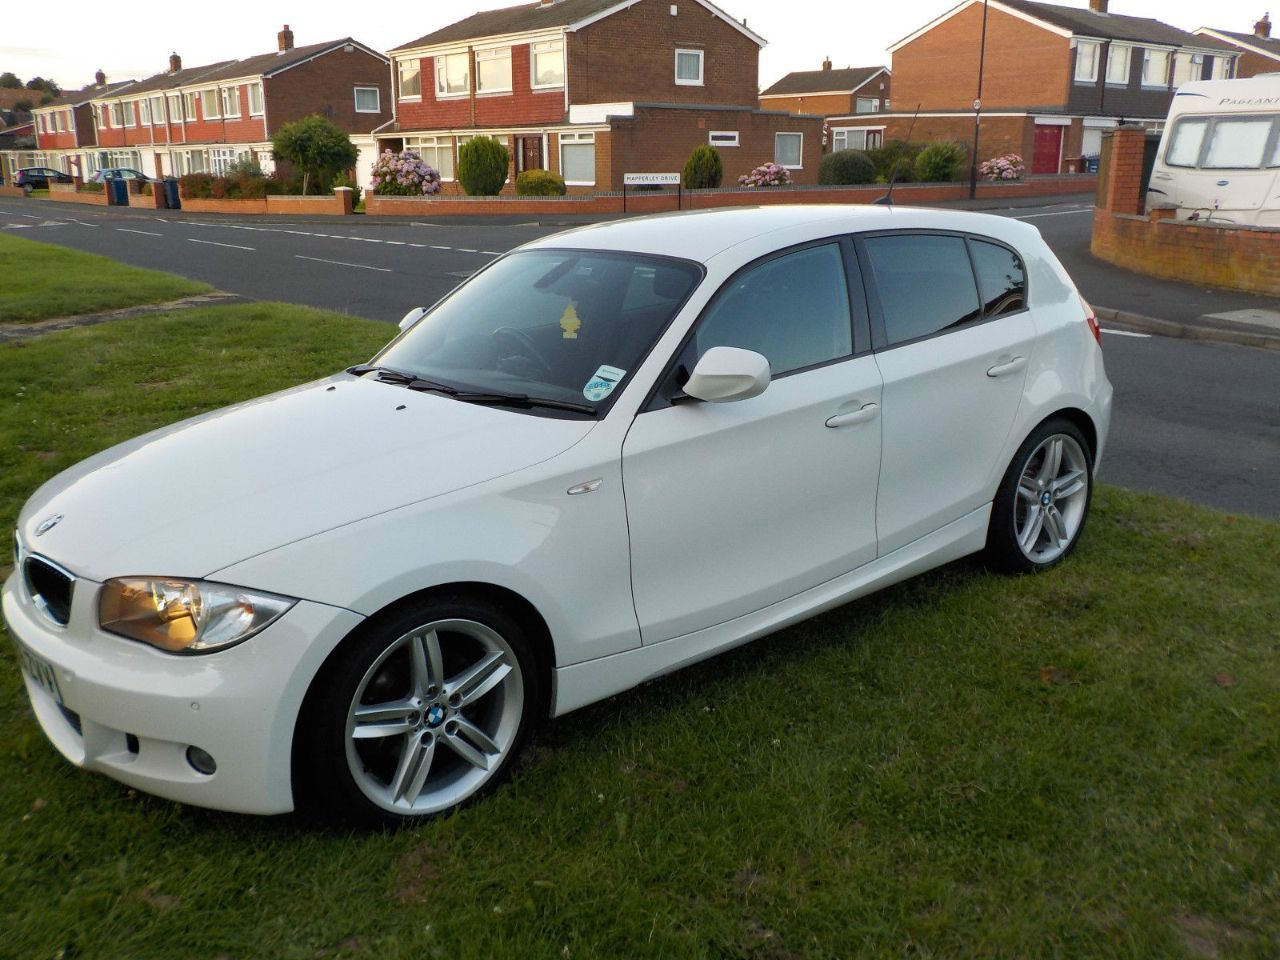 used bmw 1 series and second hand bmw 1 series in king 39 s lynn. Black Bedroom Furniture Sets. Home Design Ideas